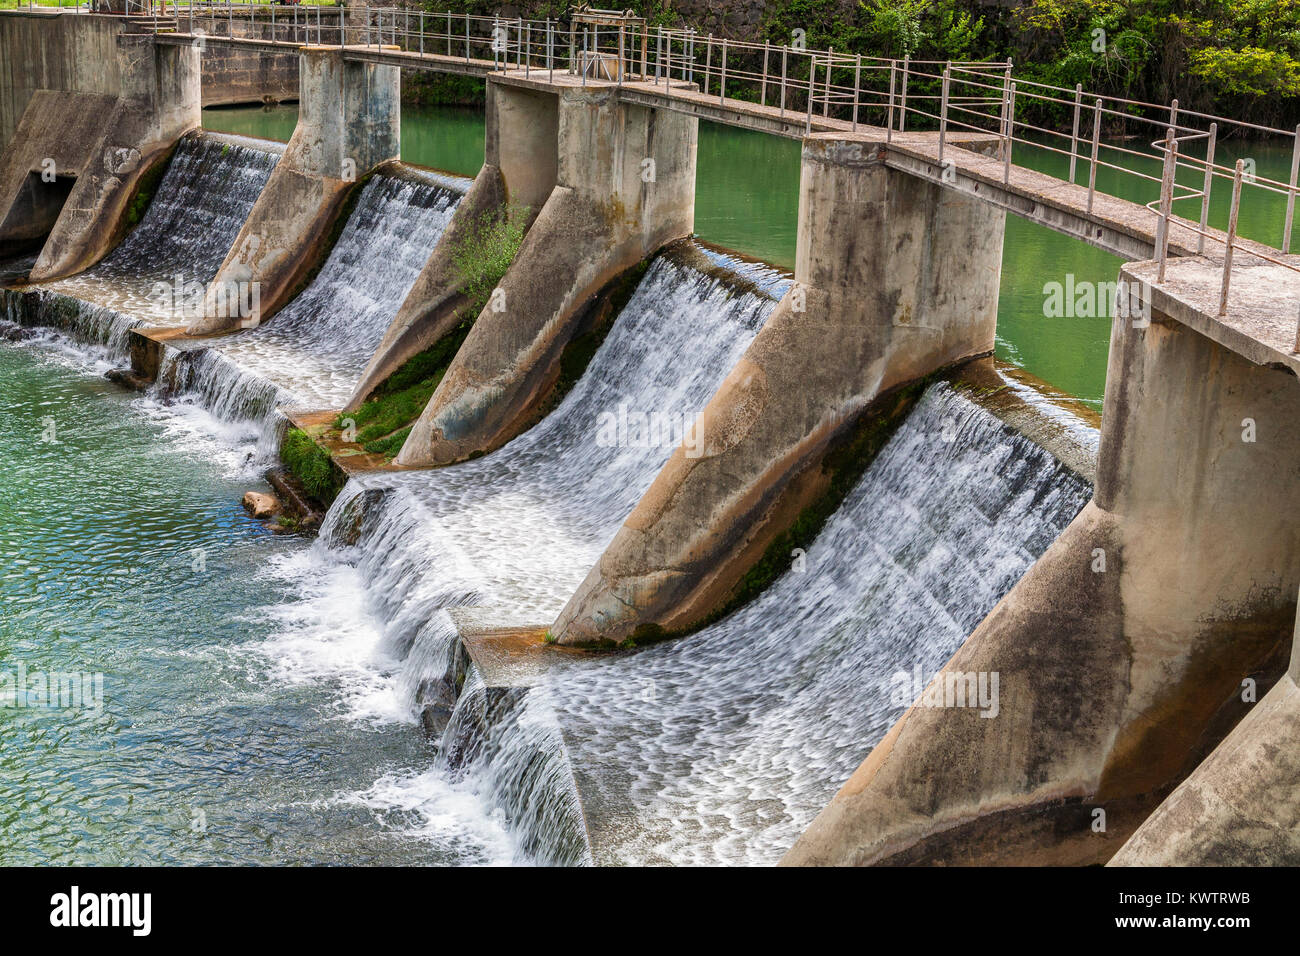 Concrete sluice on Llobregat river in Catalonia, Spain - Stock Image